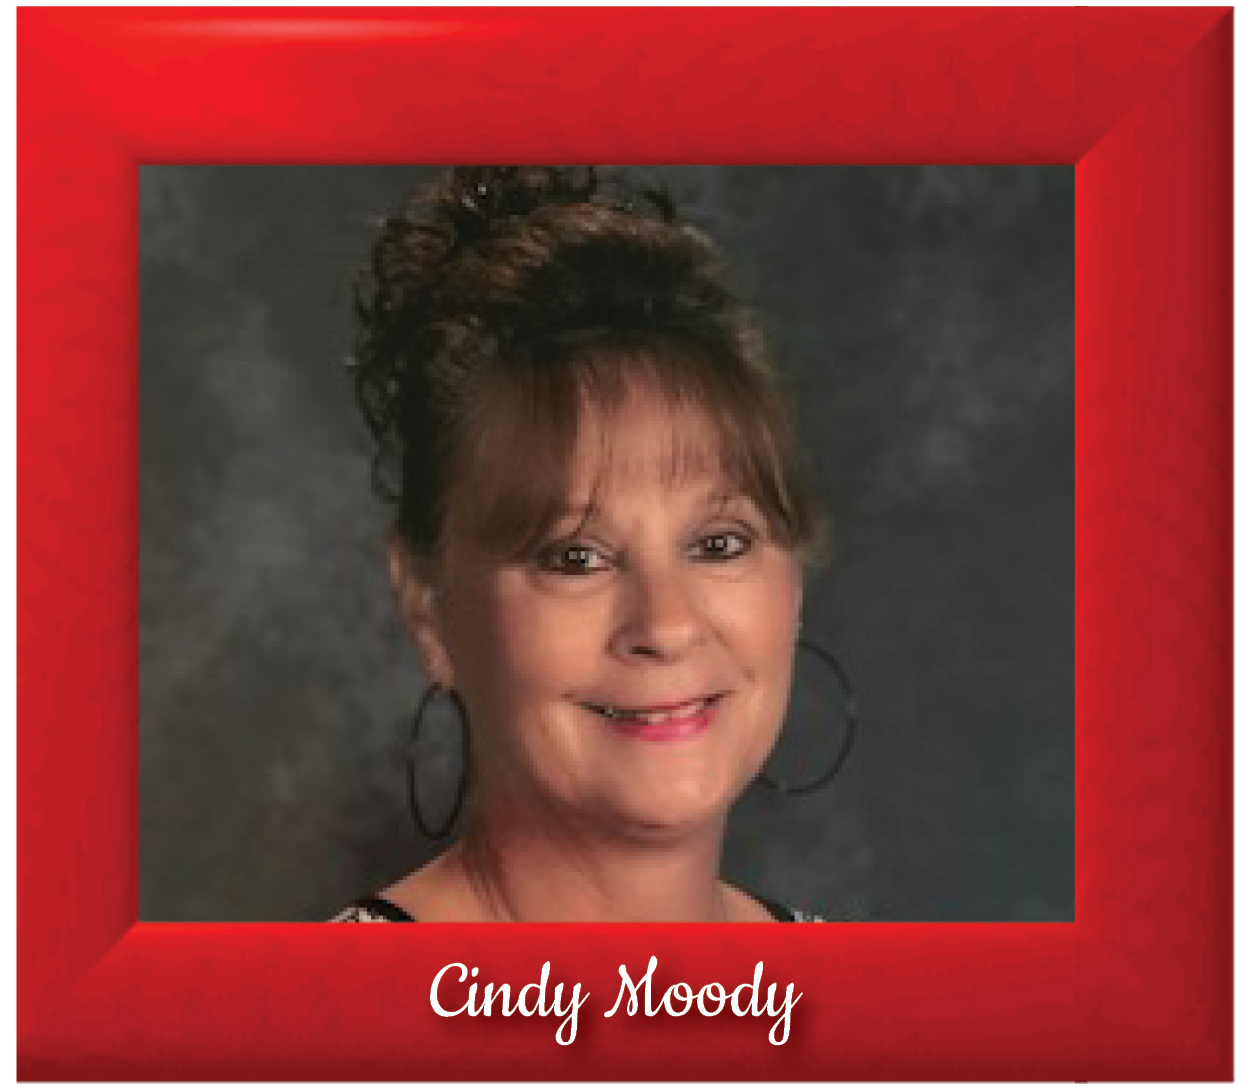 Cindy Moody